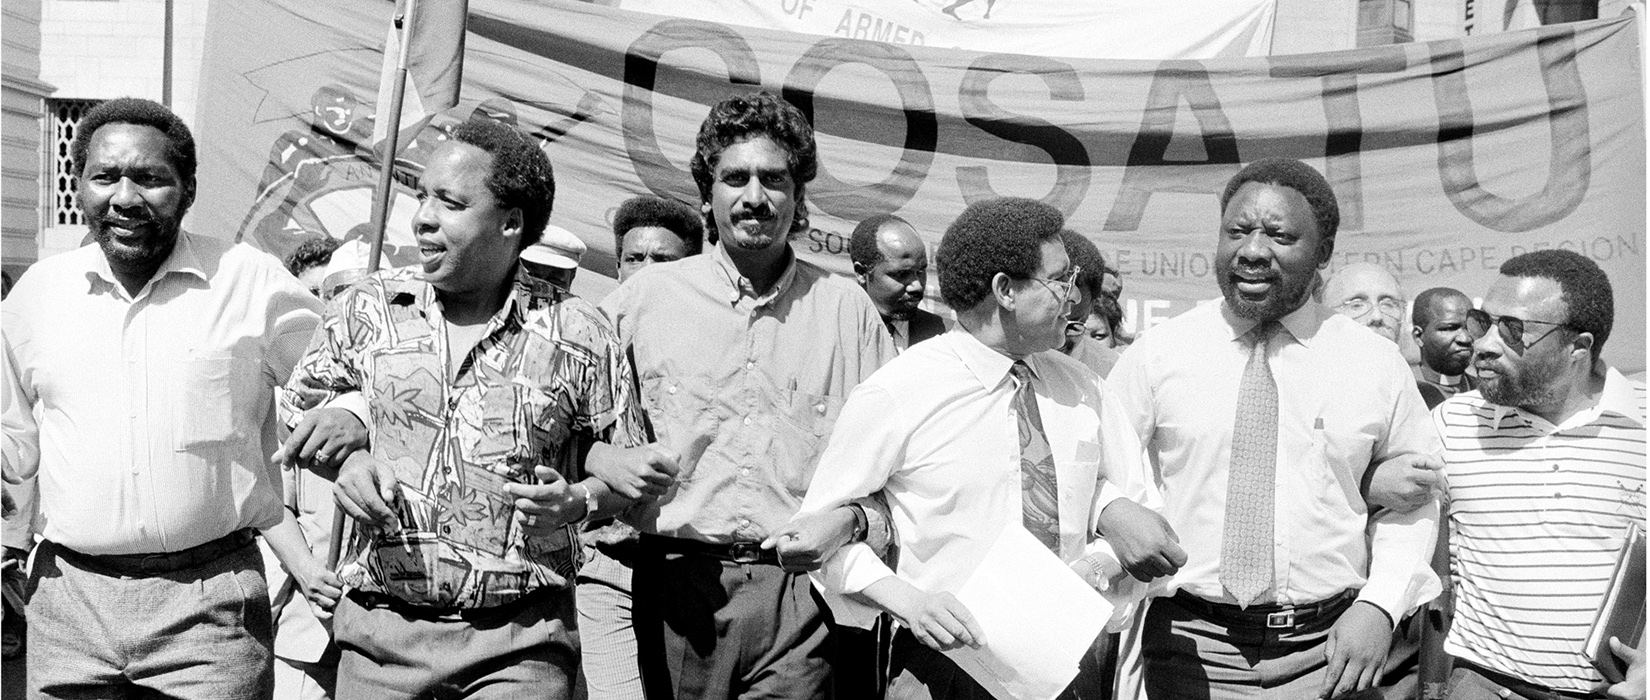 Protest march. From left: Tokyo Sexwale, Chris Hani, Jay Naidoo, Alan Boesak, Cyril Ramaphosa, Tony Yengeni. (Benny Gool)